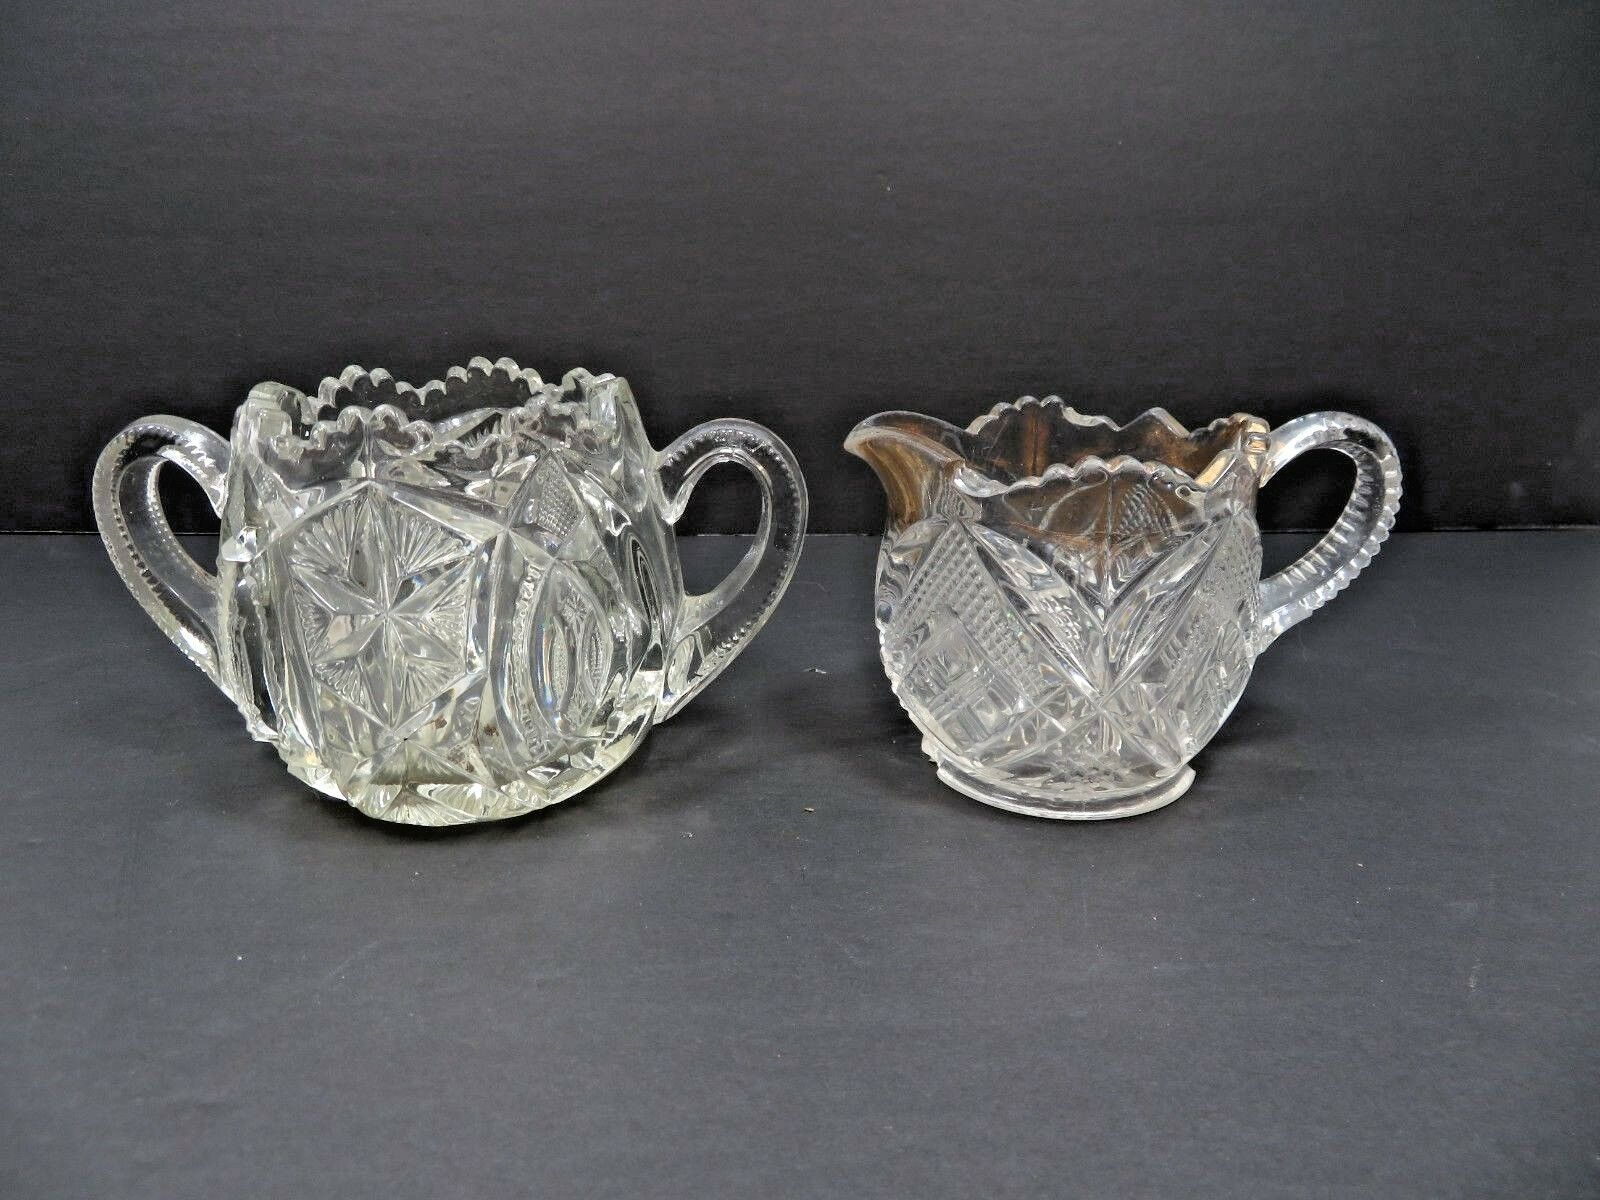 Primary image for Vintage Mid Century etched Elegant Heisey glass creamer sugar set